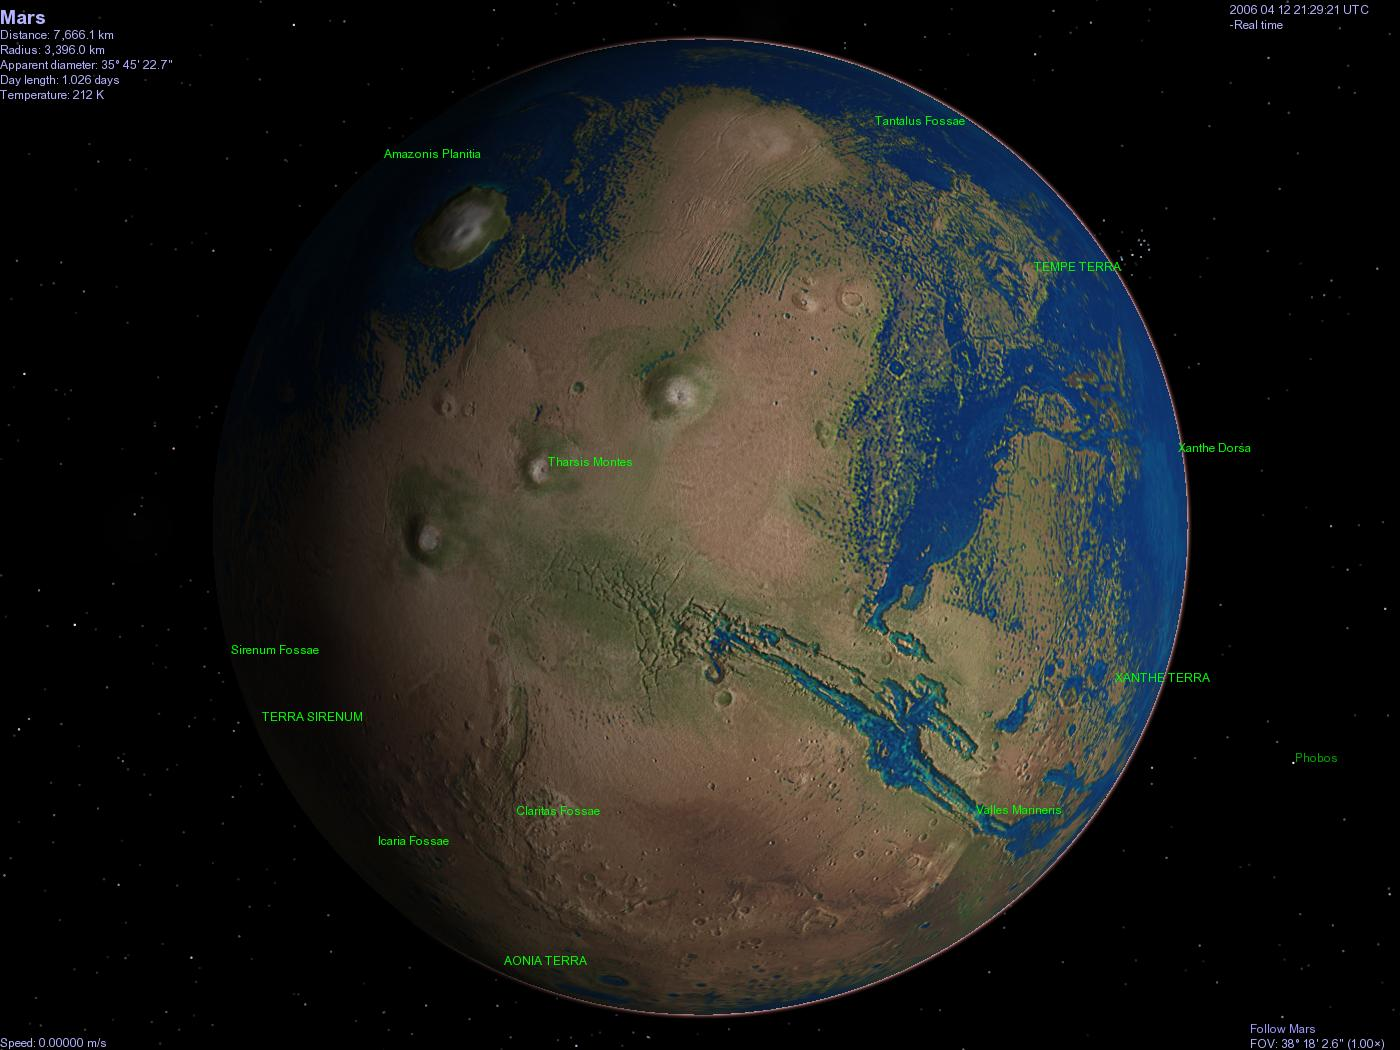 Unmanned Spaceflight.com > Searching for abstract images of ... on borealis basin on mars, detailed map of mars, map of a trip to mars, political map of mars, map of mars space, map of mars land, modern map of mars, map of mars with water, terraforming of mars,